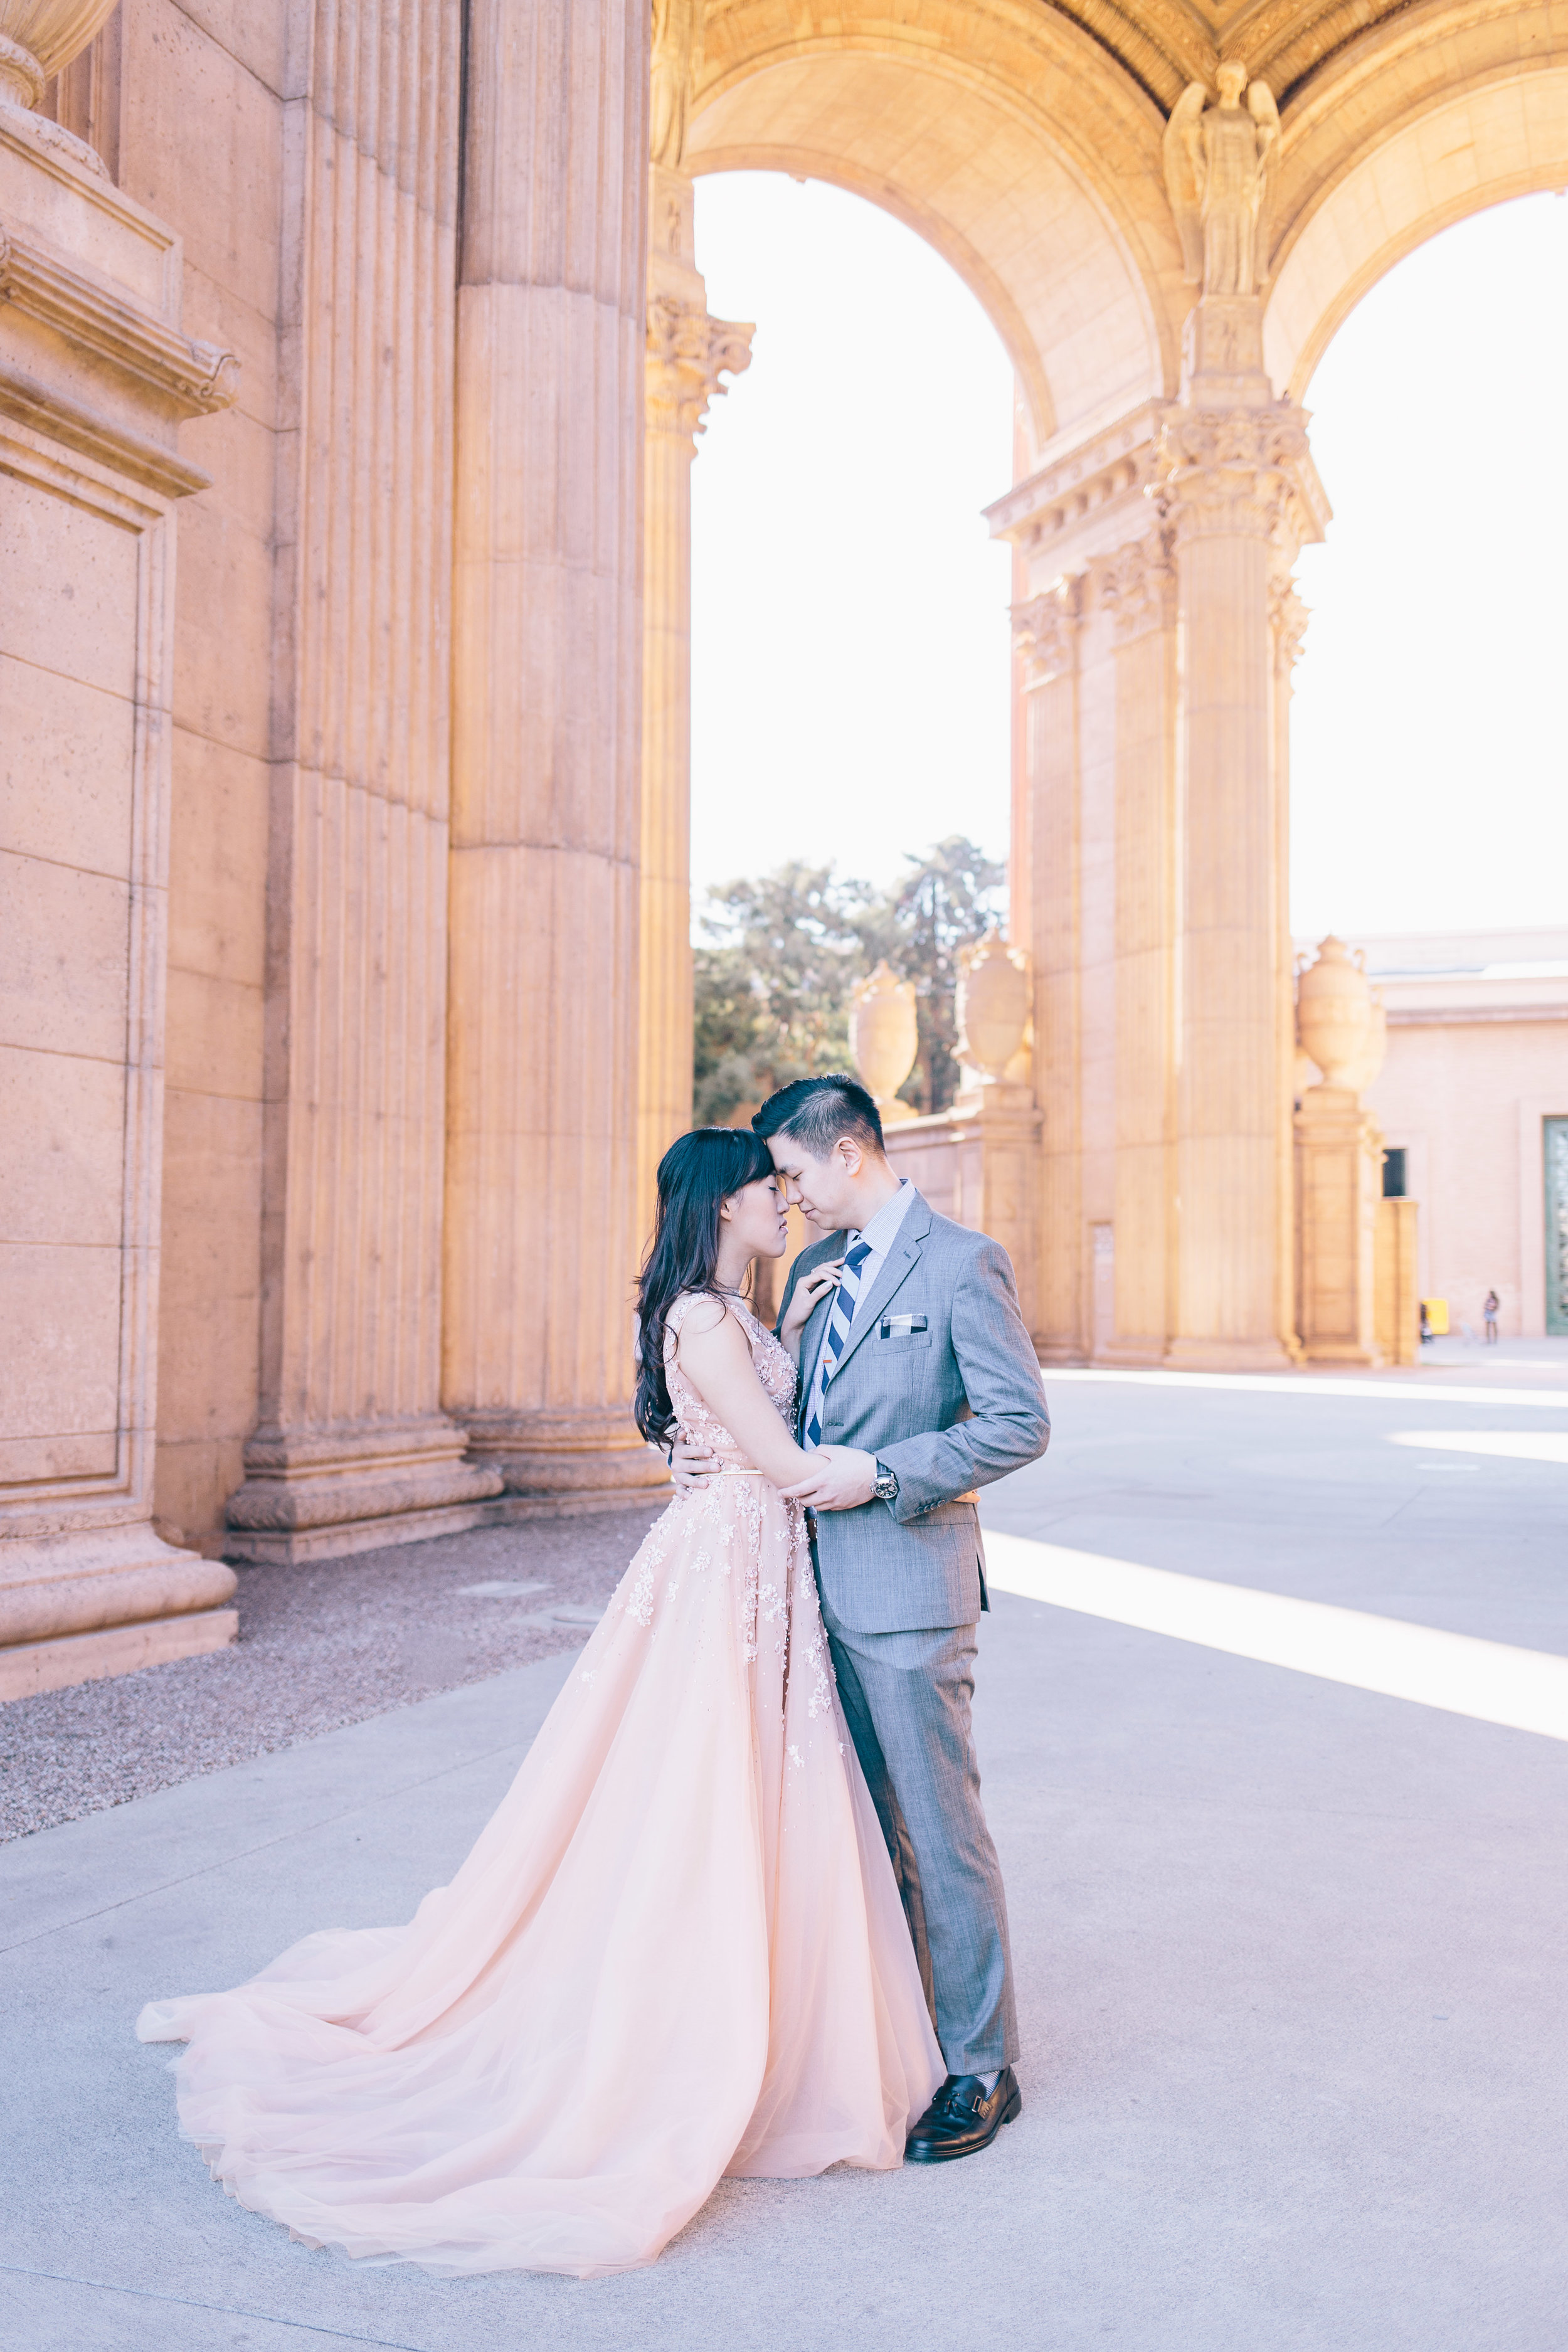 Best Engagement Photo Locations in San Francisco - Palace of Fine Arts Engagement Photos by JBJ Pictures (8).jpg